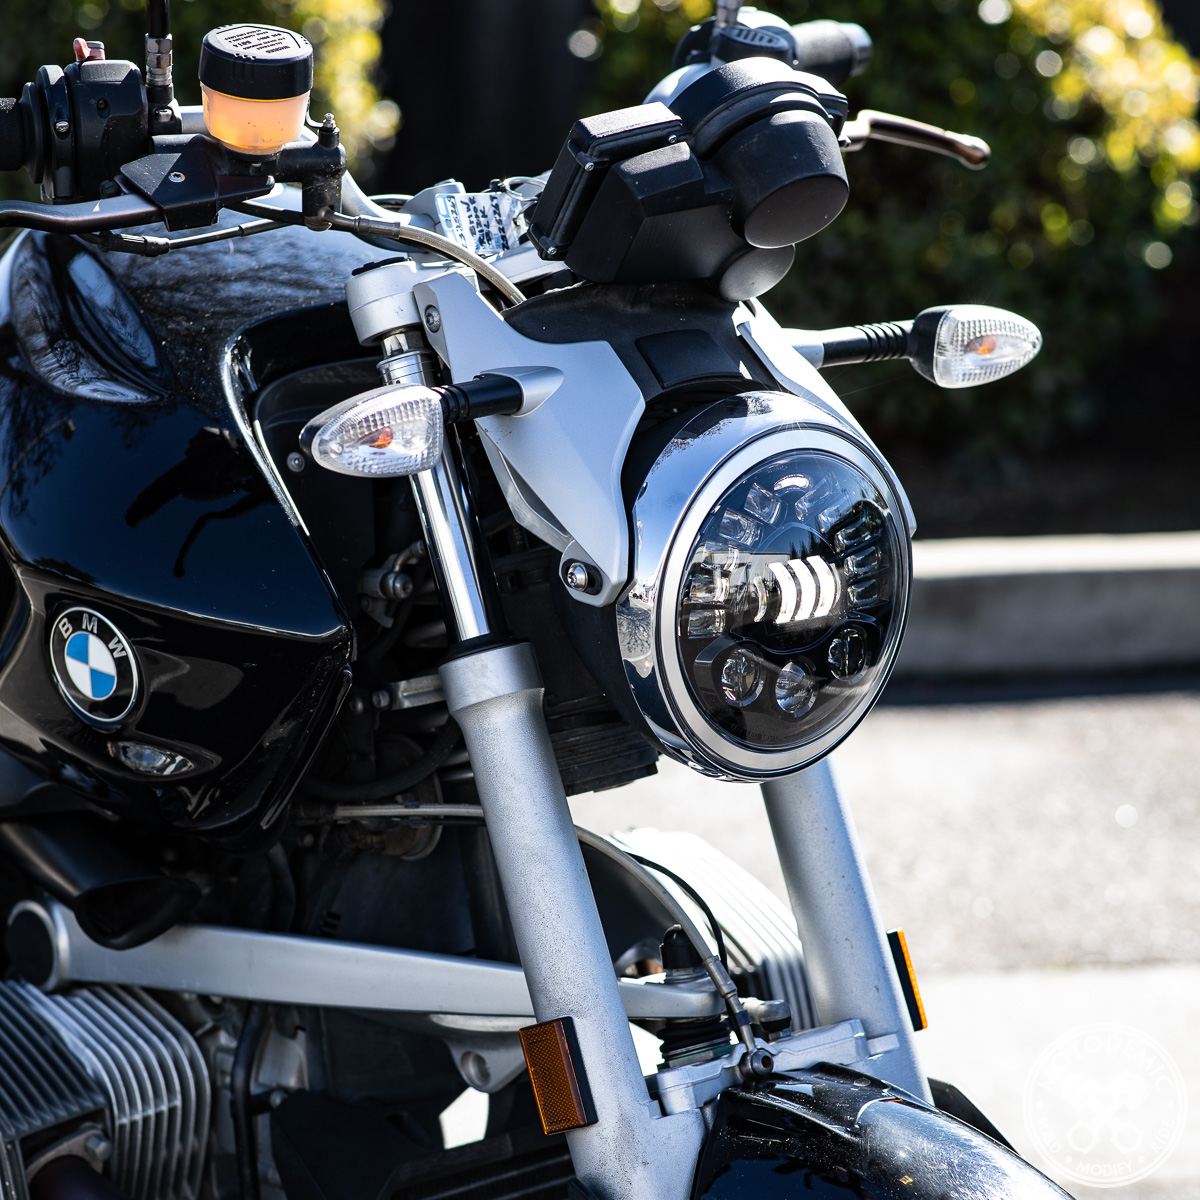 BMW R1200R LED Headlight Upgrade